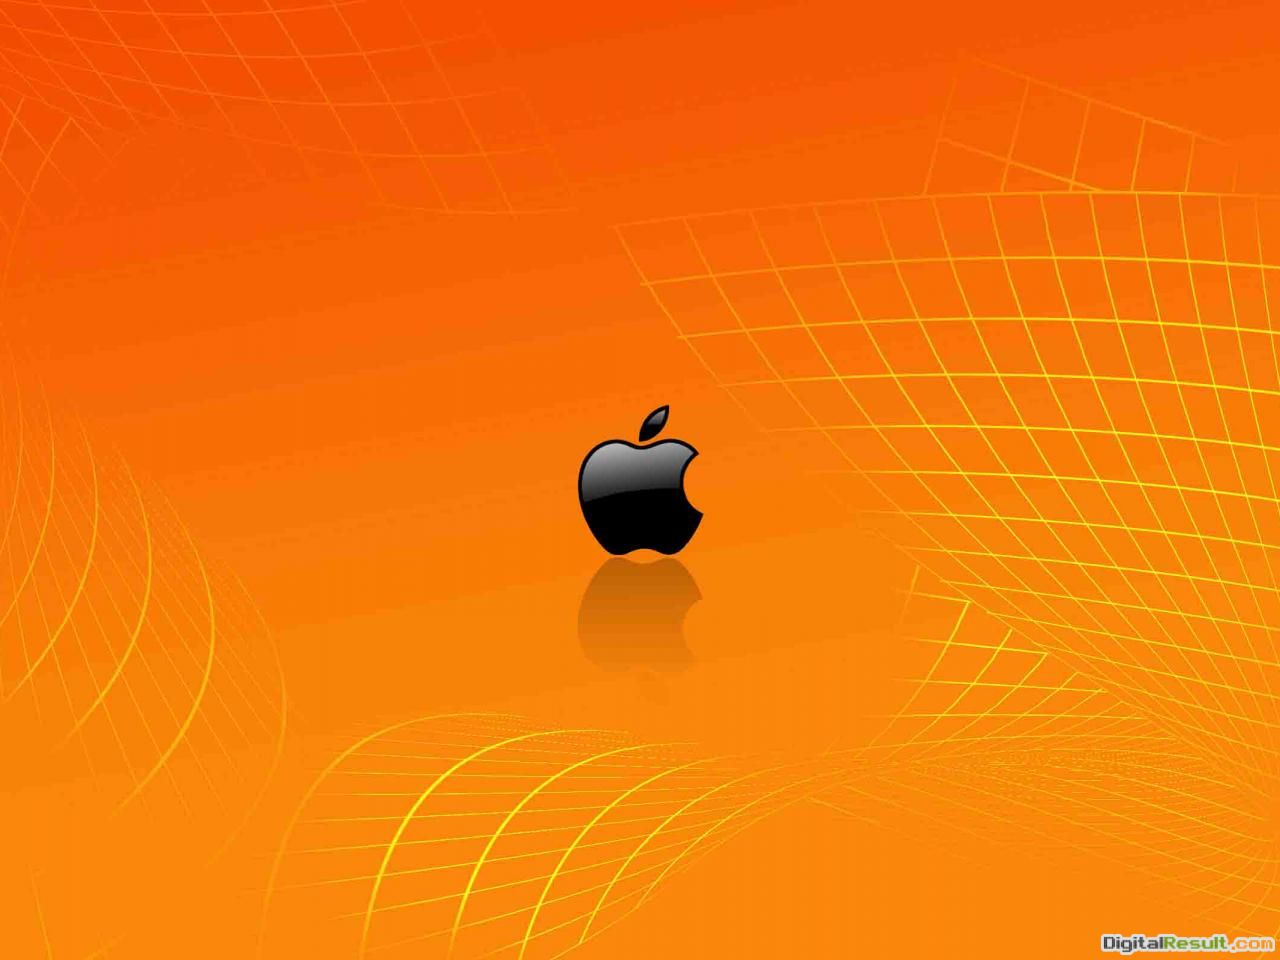 Tags: Apple logo wallpaper Apple wallpapers cool wallpapers 431